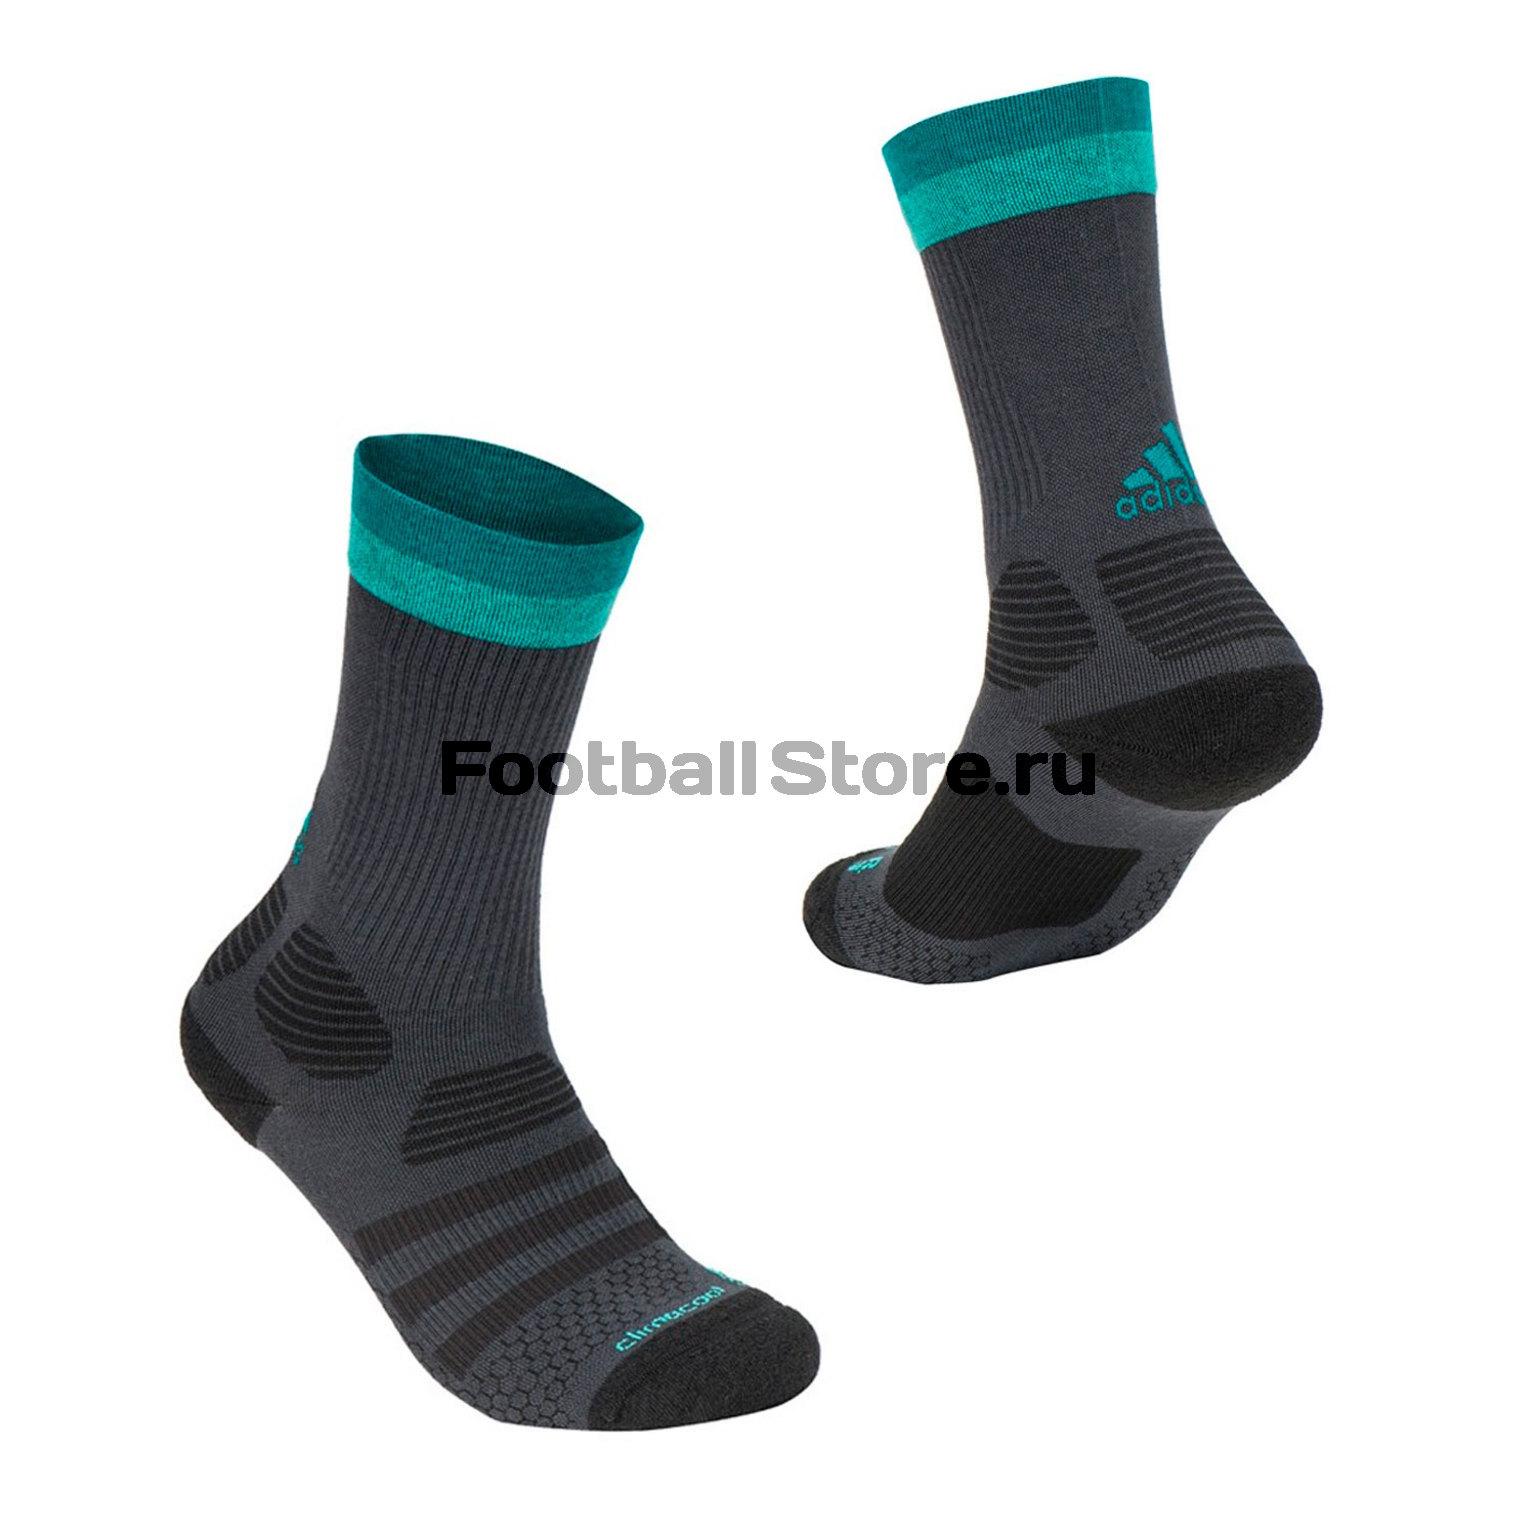 Носки Adidas Носки Adidas ACE Socks AI3710